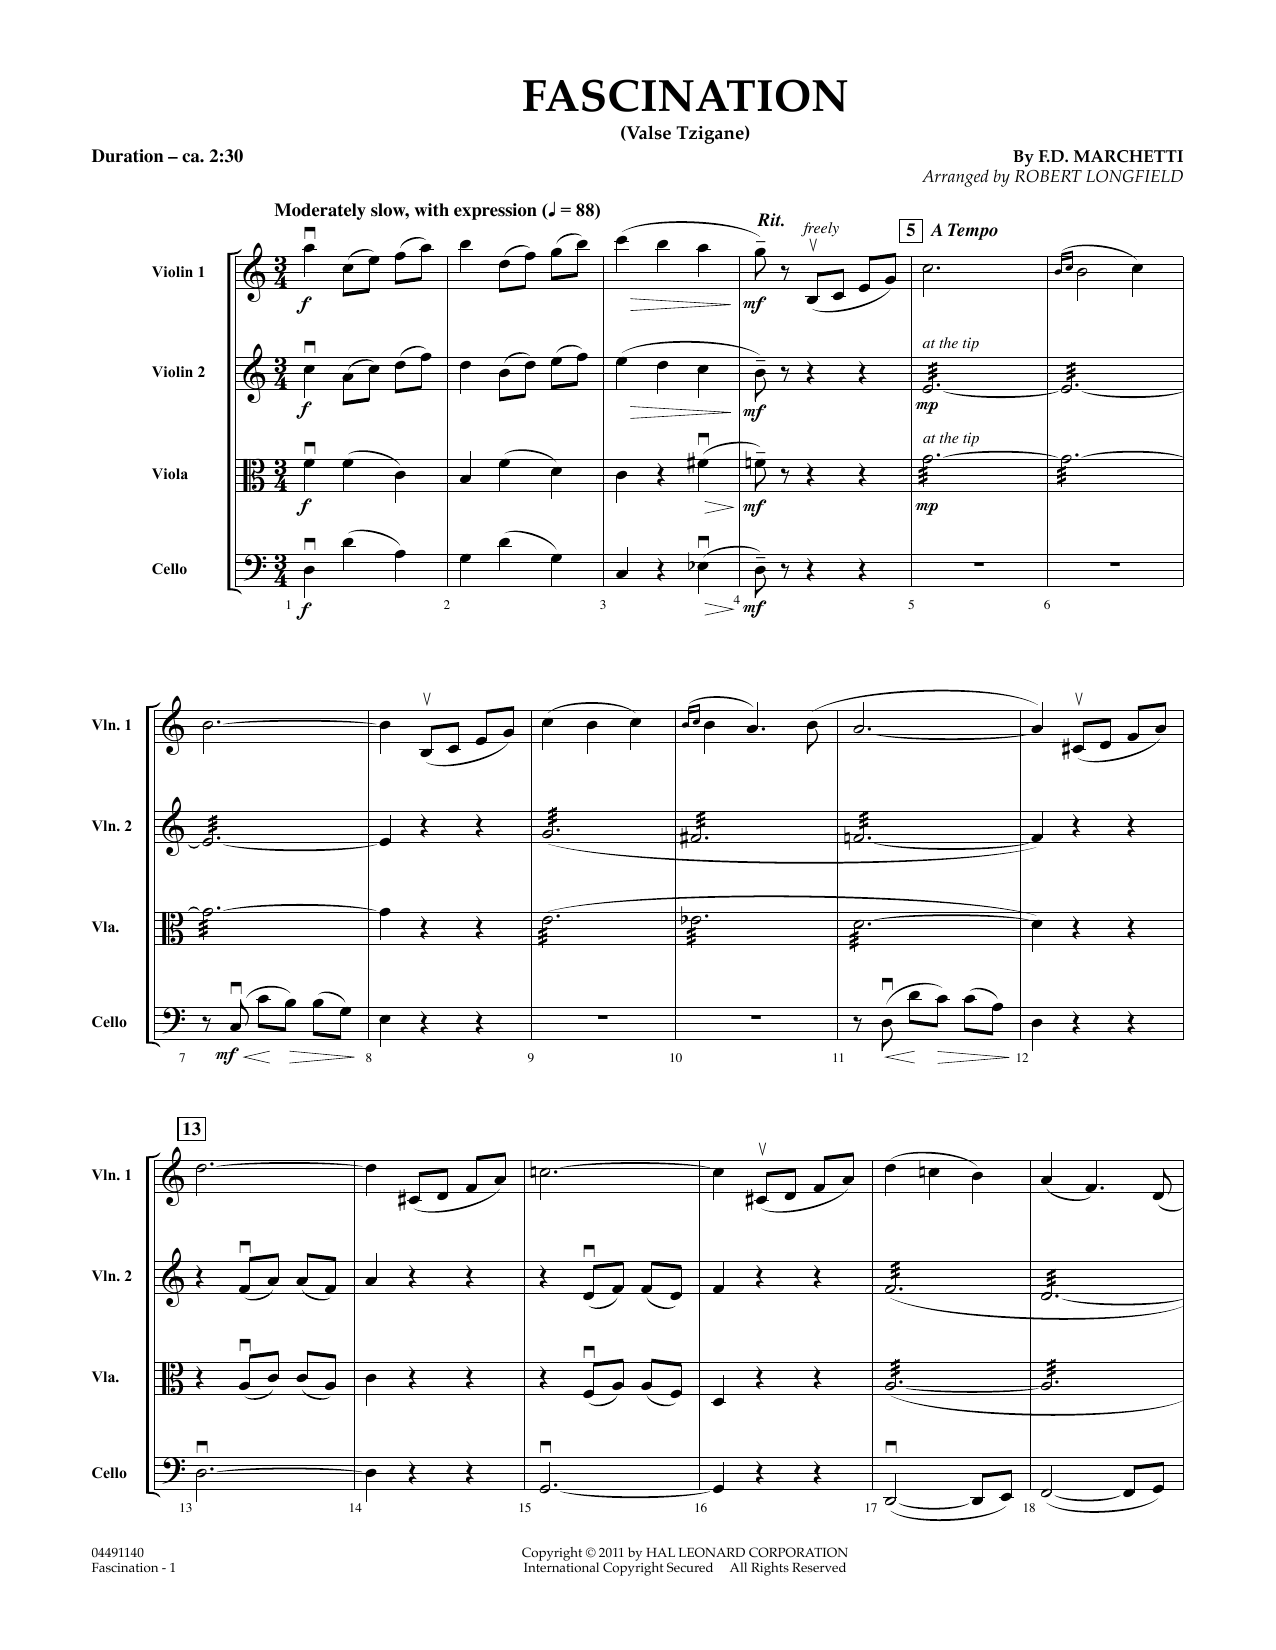 Robert Longfield Fascination (Valse Tzigane) - Conductor Score (Full Score) sheet music preview music notes and score for String Quartet including 4 page(s)